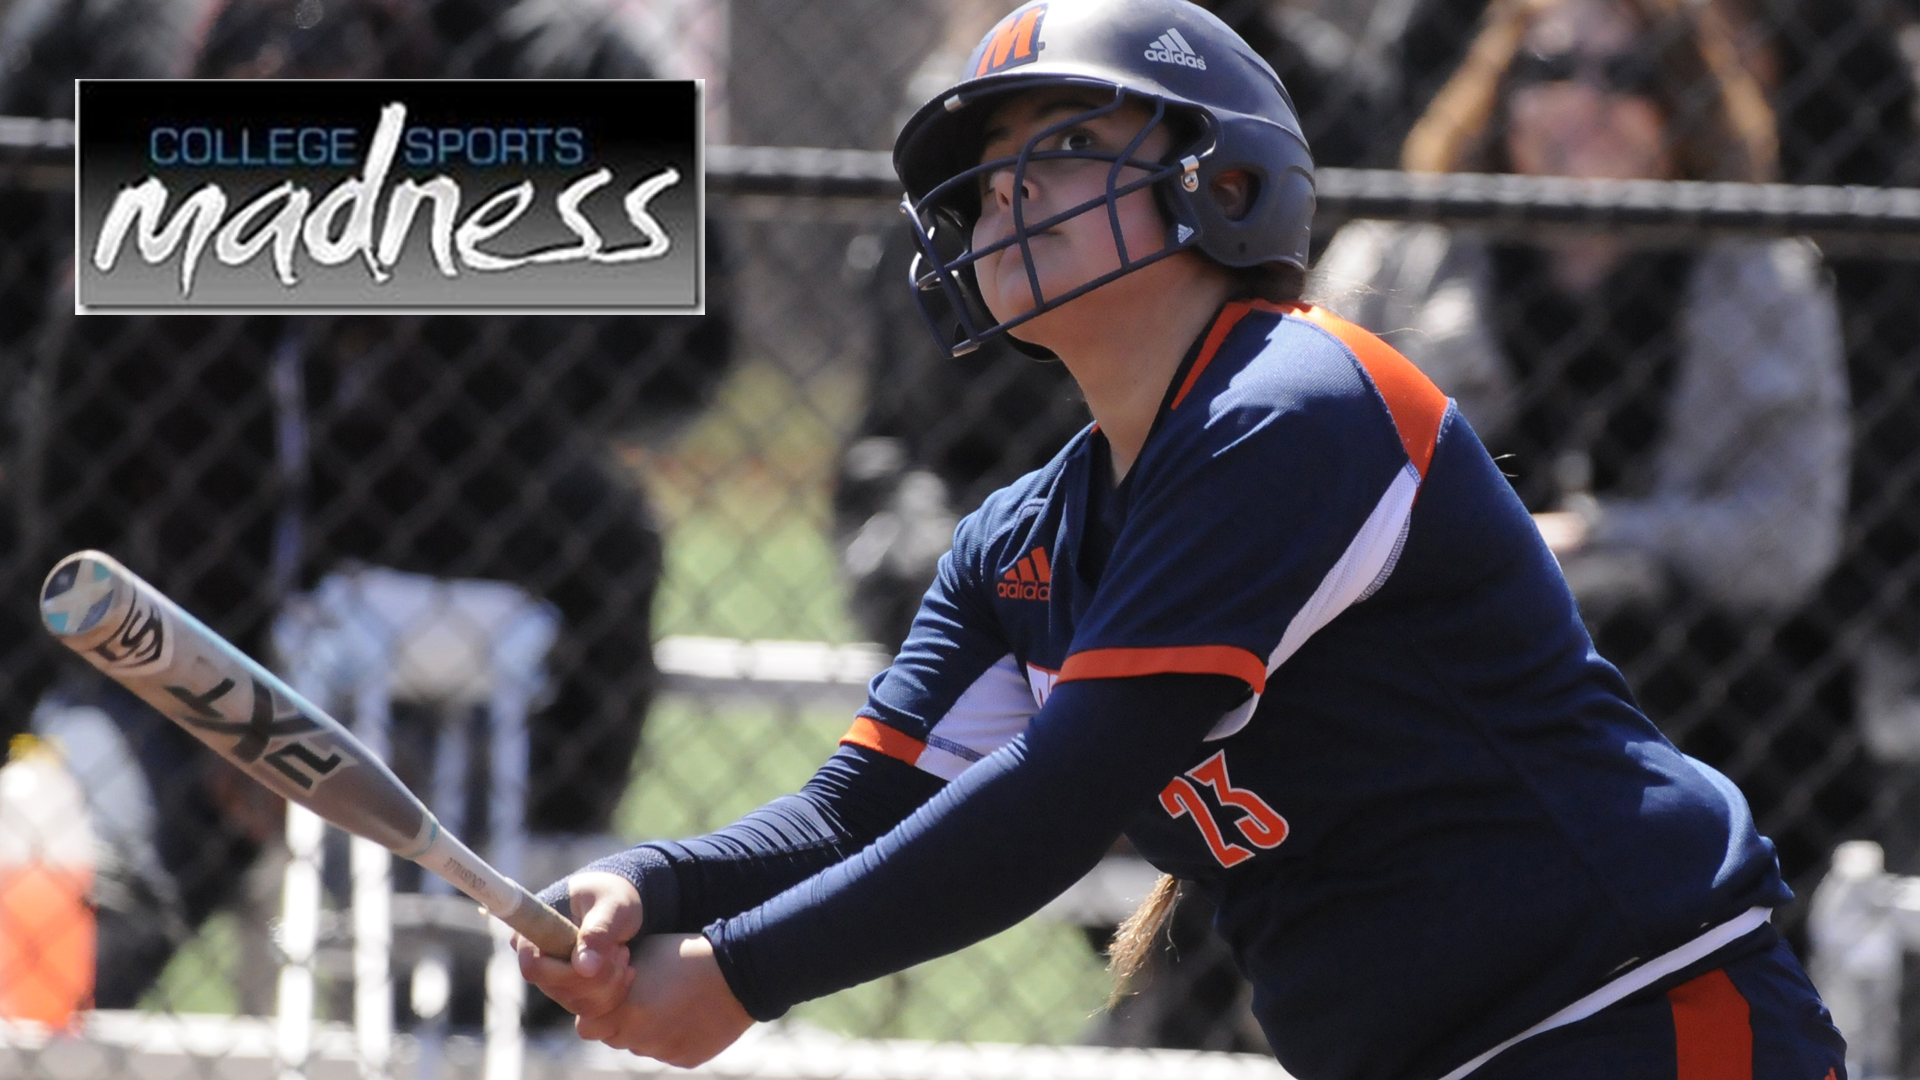 softball morgan state Find real-time 2018 morgan state morgan state softball scores, results, roster,  schedule & team stats at hero sports for the meac see the latest morgan state .